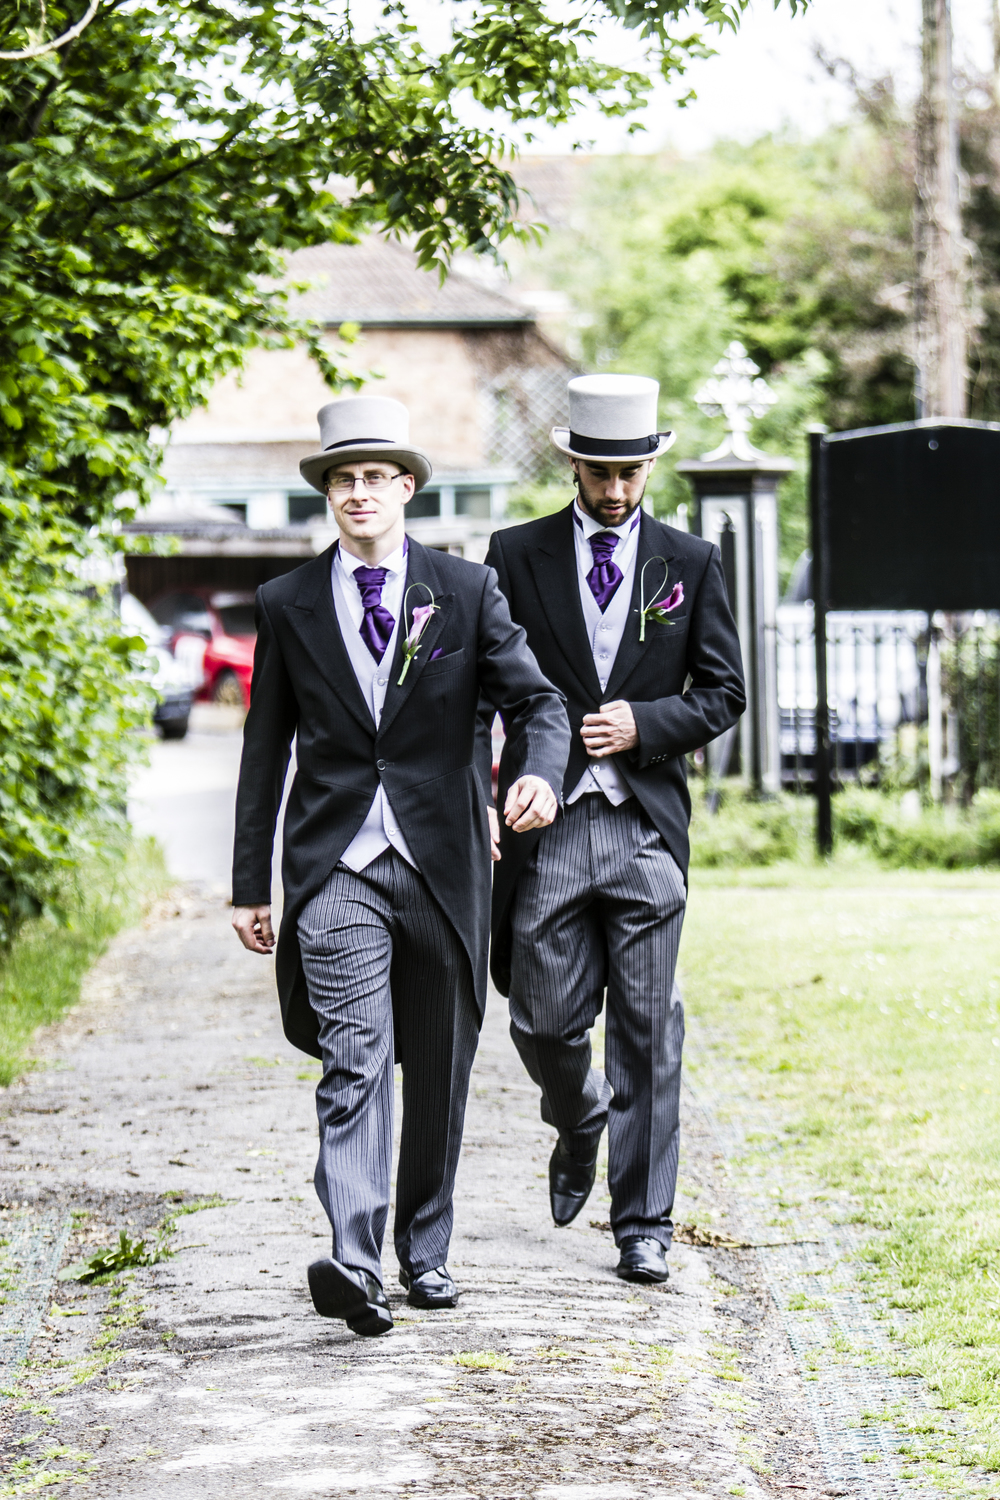 22-06-2013_Alex_Pople_Jess_Lewis_Wedding_EDITED_00007.jpg